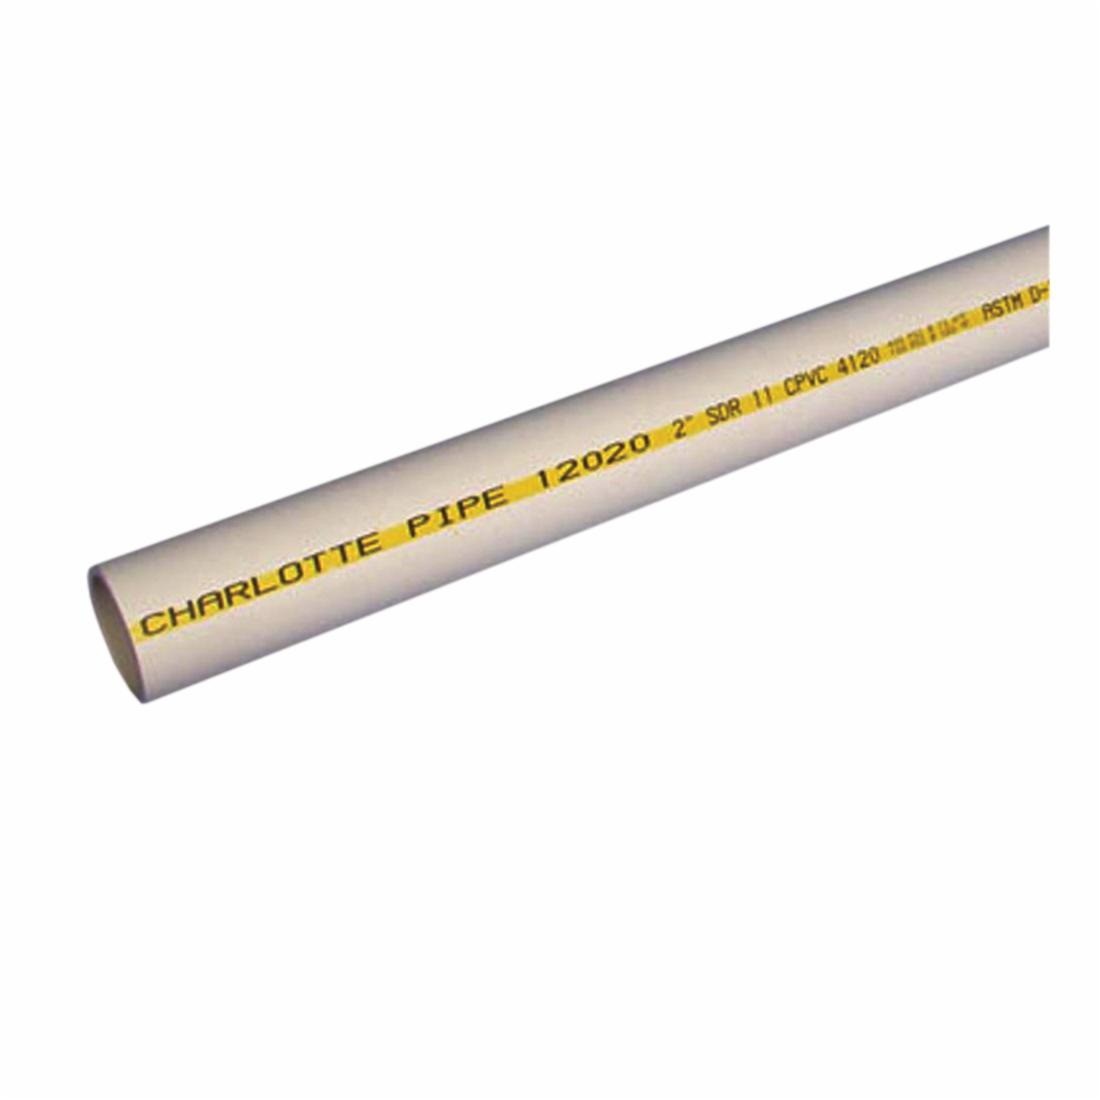 Charlotte 1/2X10FT CPVC CTS F/G GOLD TUBING WATER